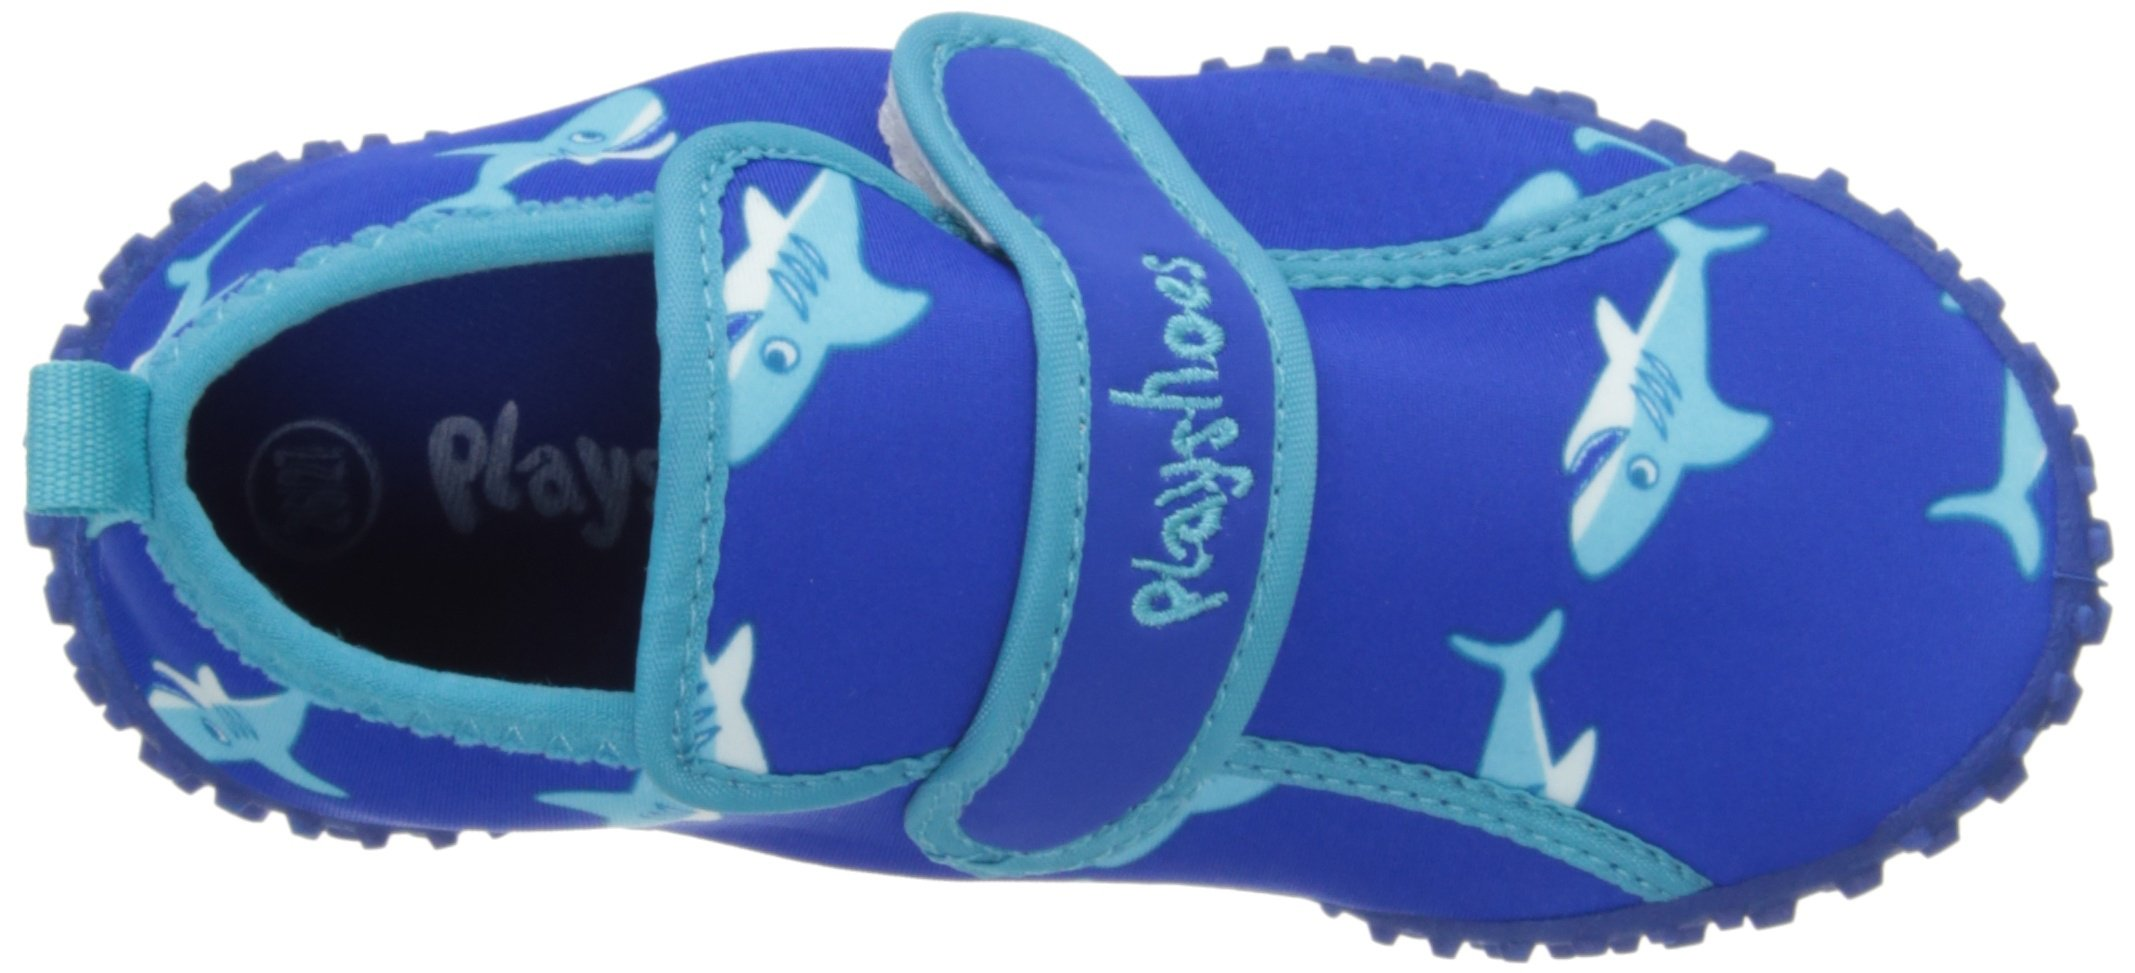 Playshoes Boys UV Protection Shark Collection Aqua Swimming/Beach Shoes (11.5 M US Little Kid) by Playshoes (Image #7)